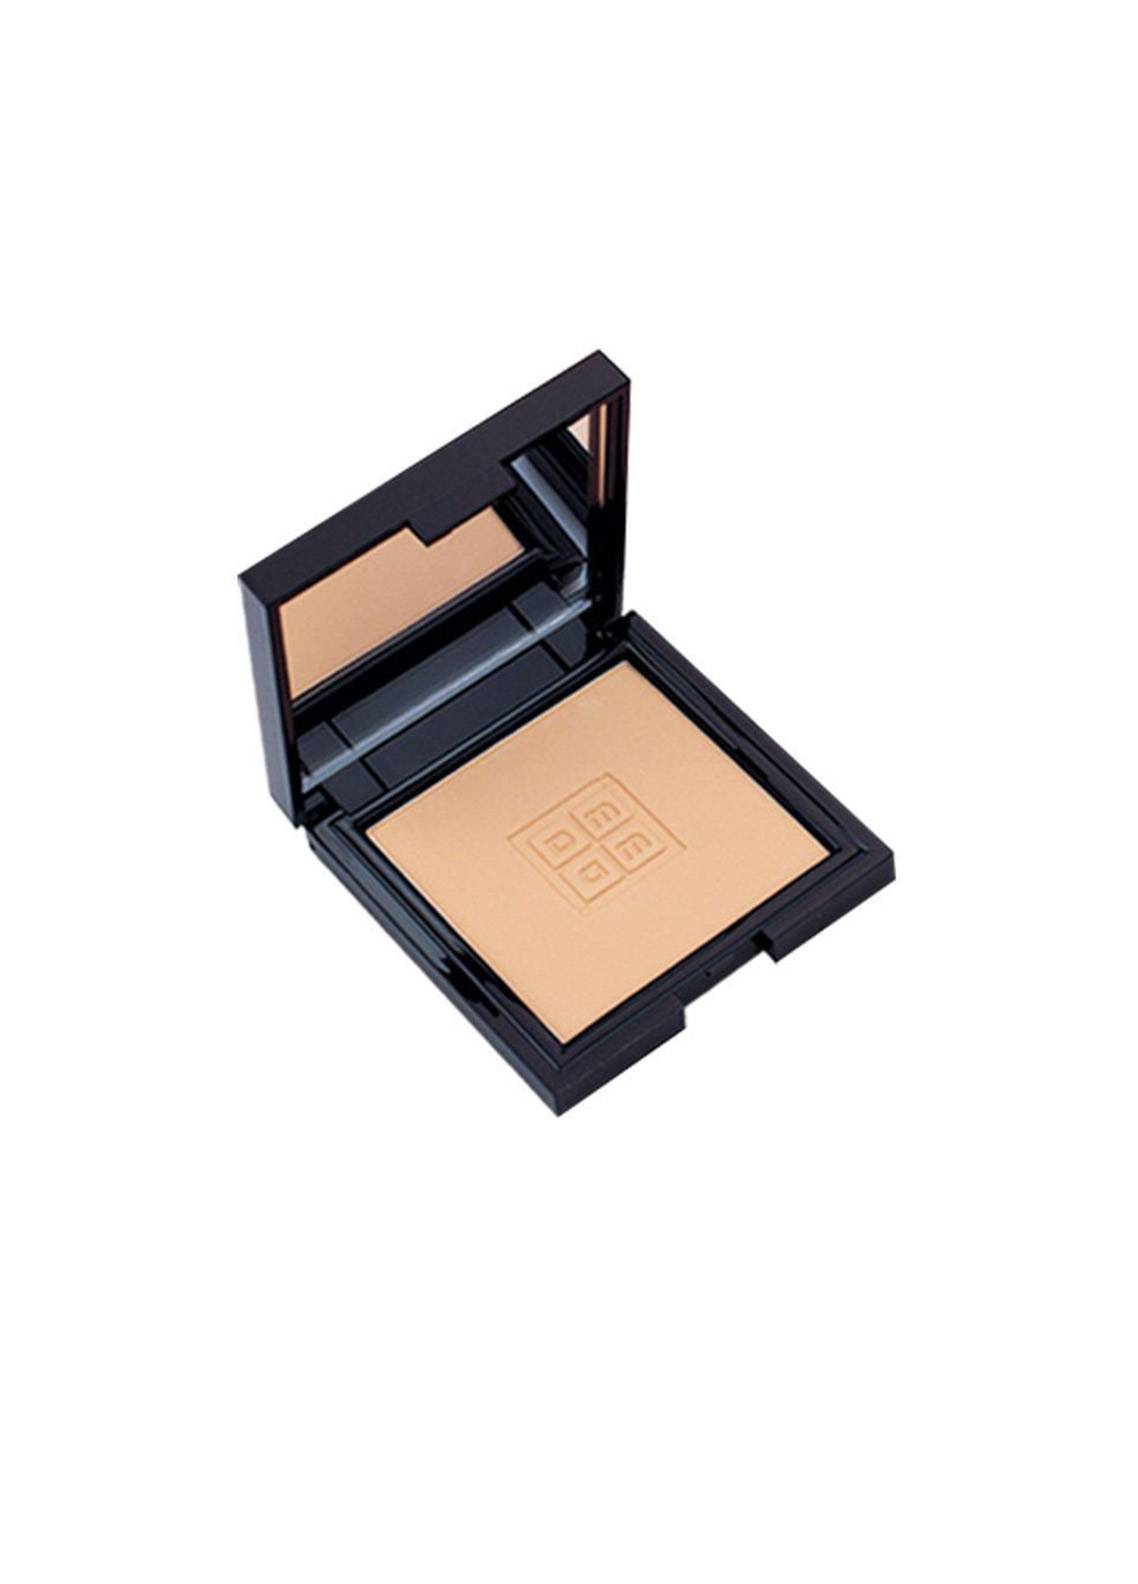 DMGM Even Complexion Compact Powder - Early Tan - 04